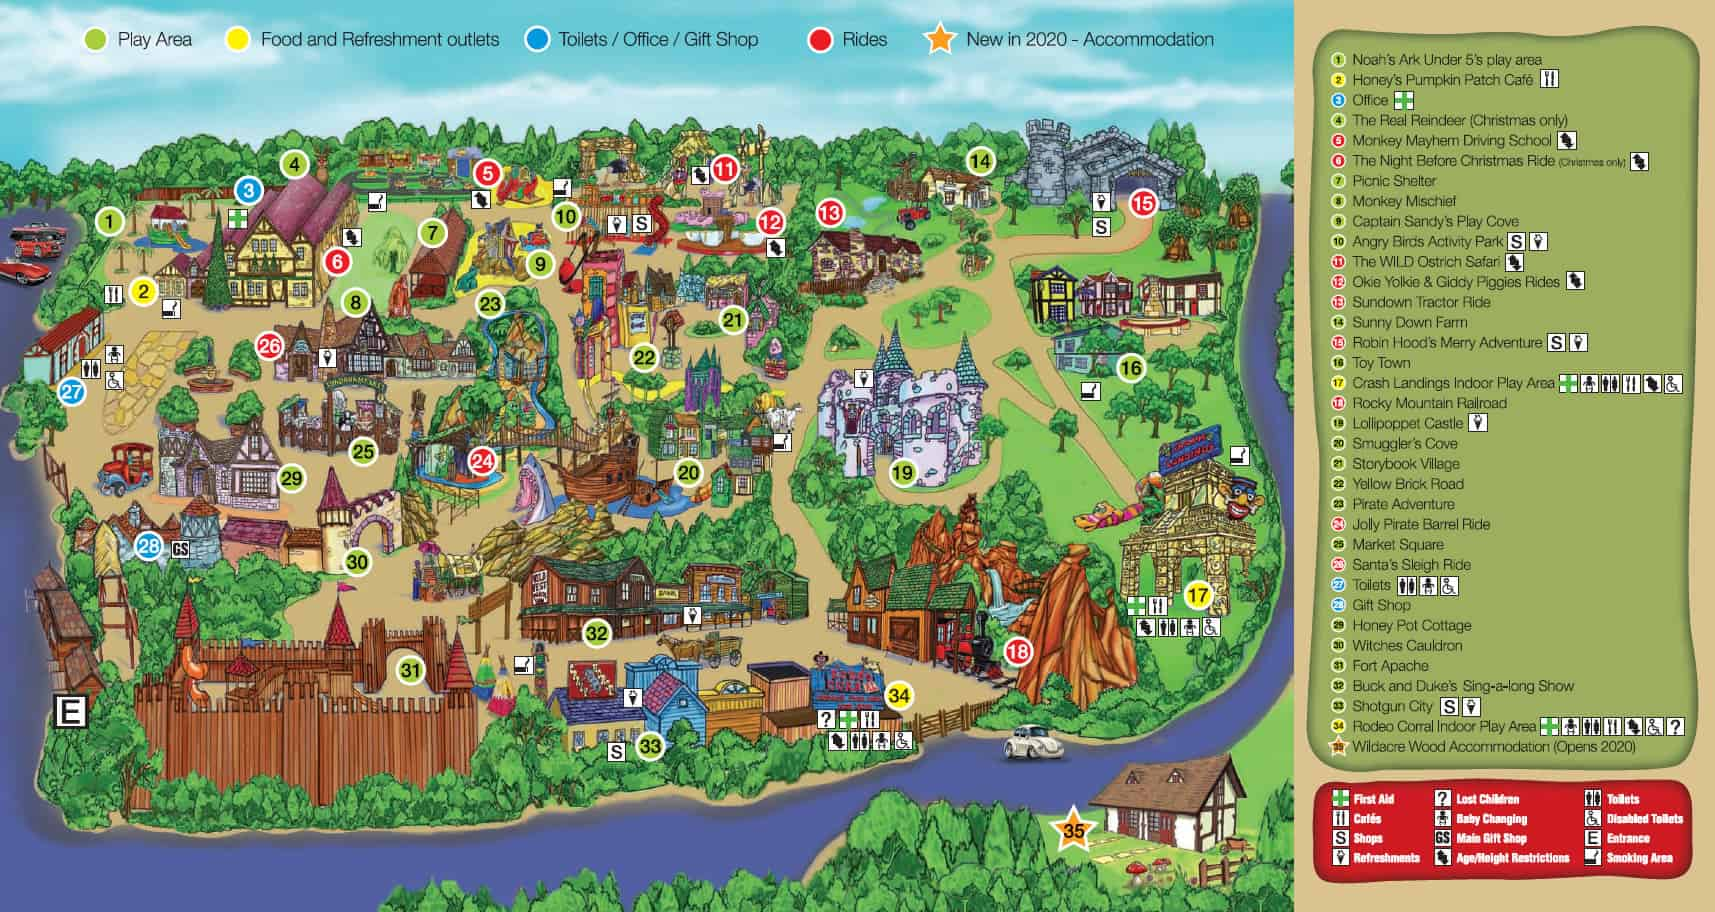 Theme Park Map & Leaflet | Sundown Adventureland